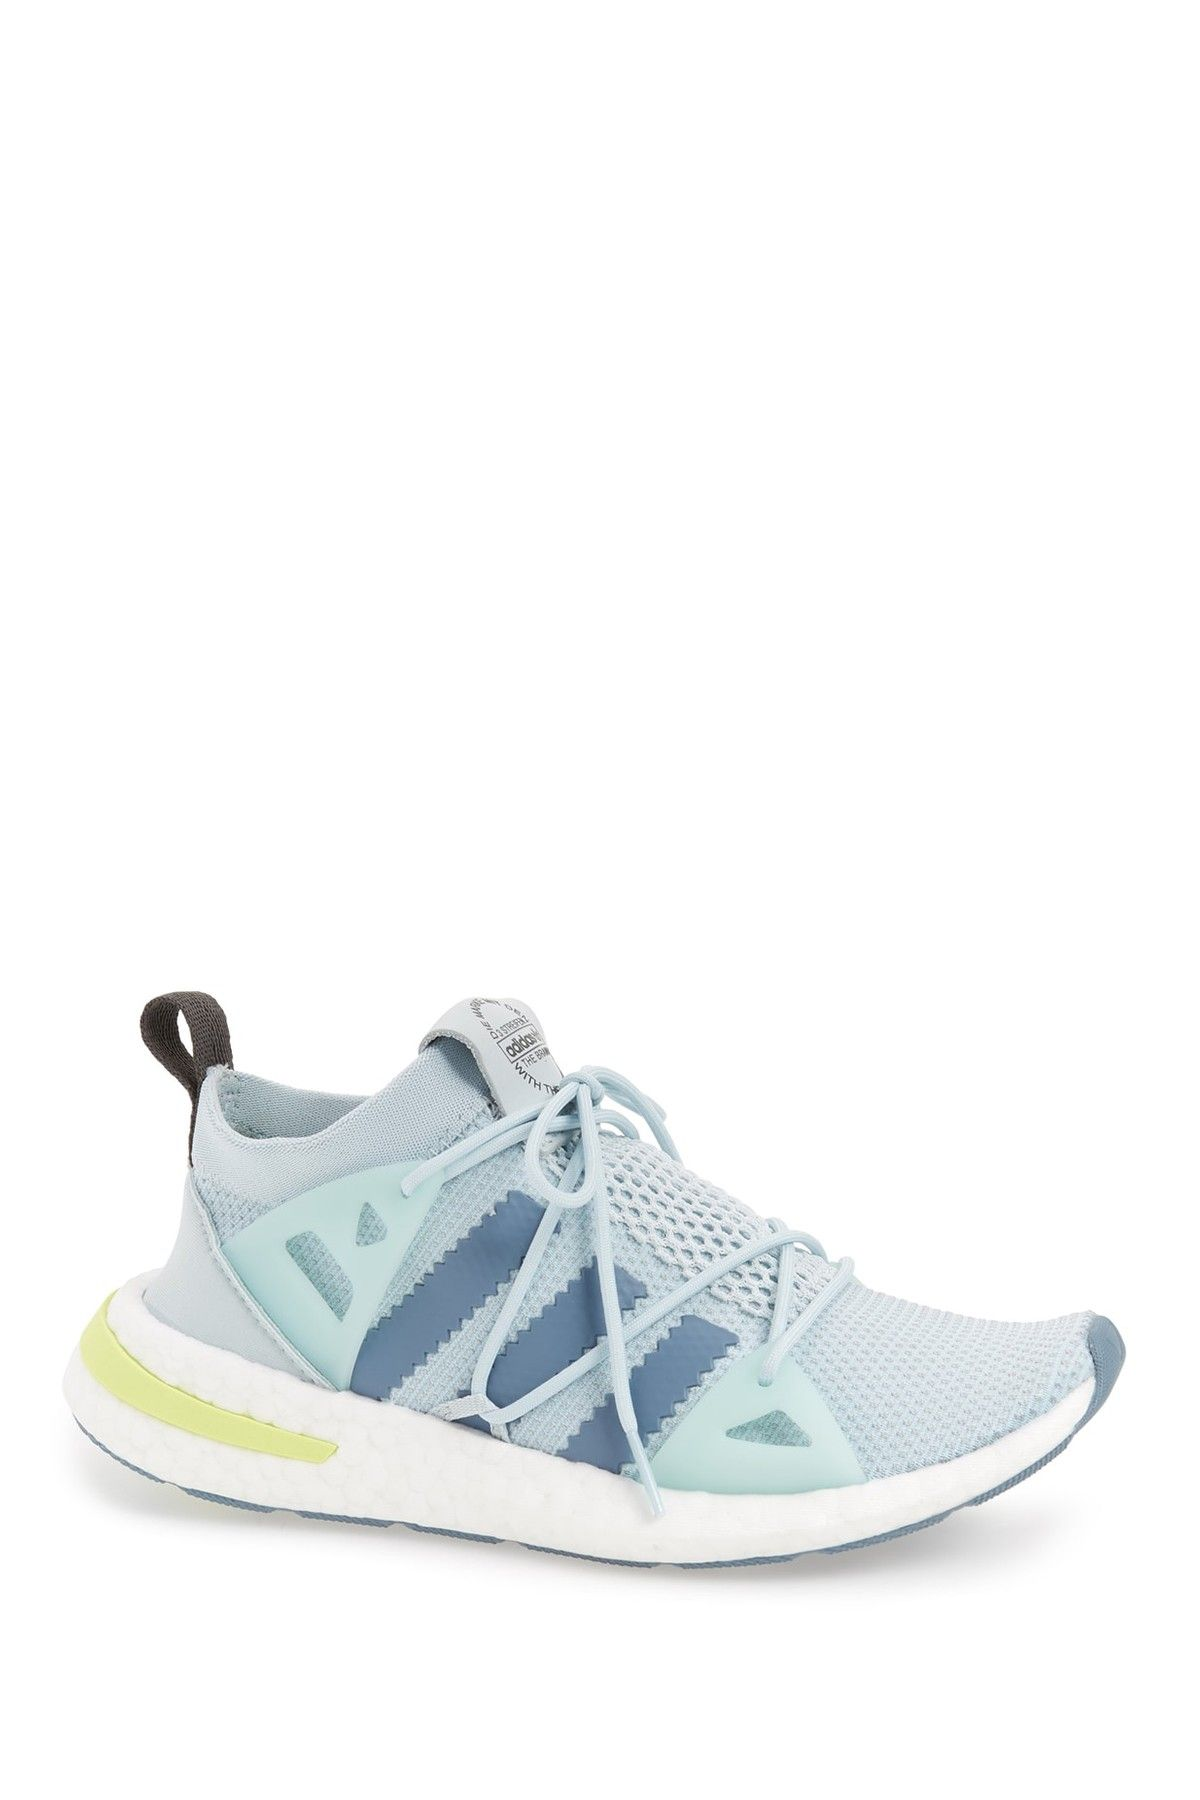 9d6ffa0945be adidas - Arkyn Sneaker (Women) is now 41% off. Free Shipping on orders over   100.